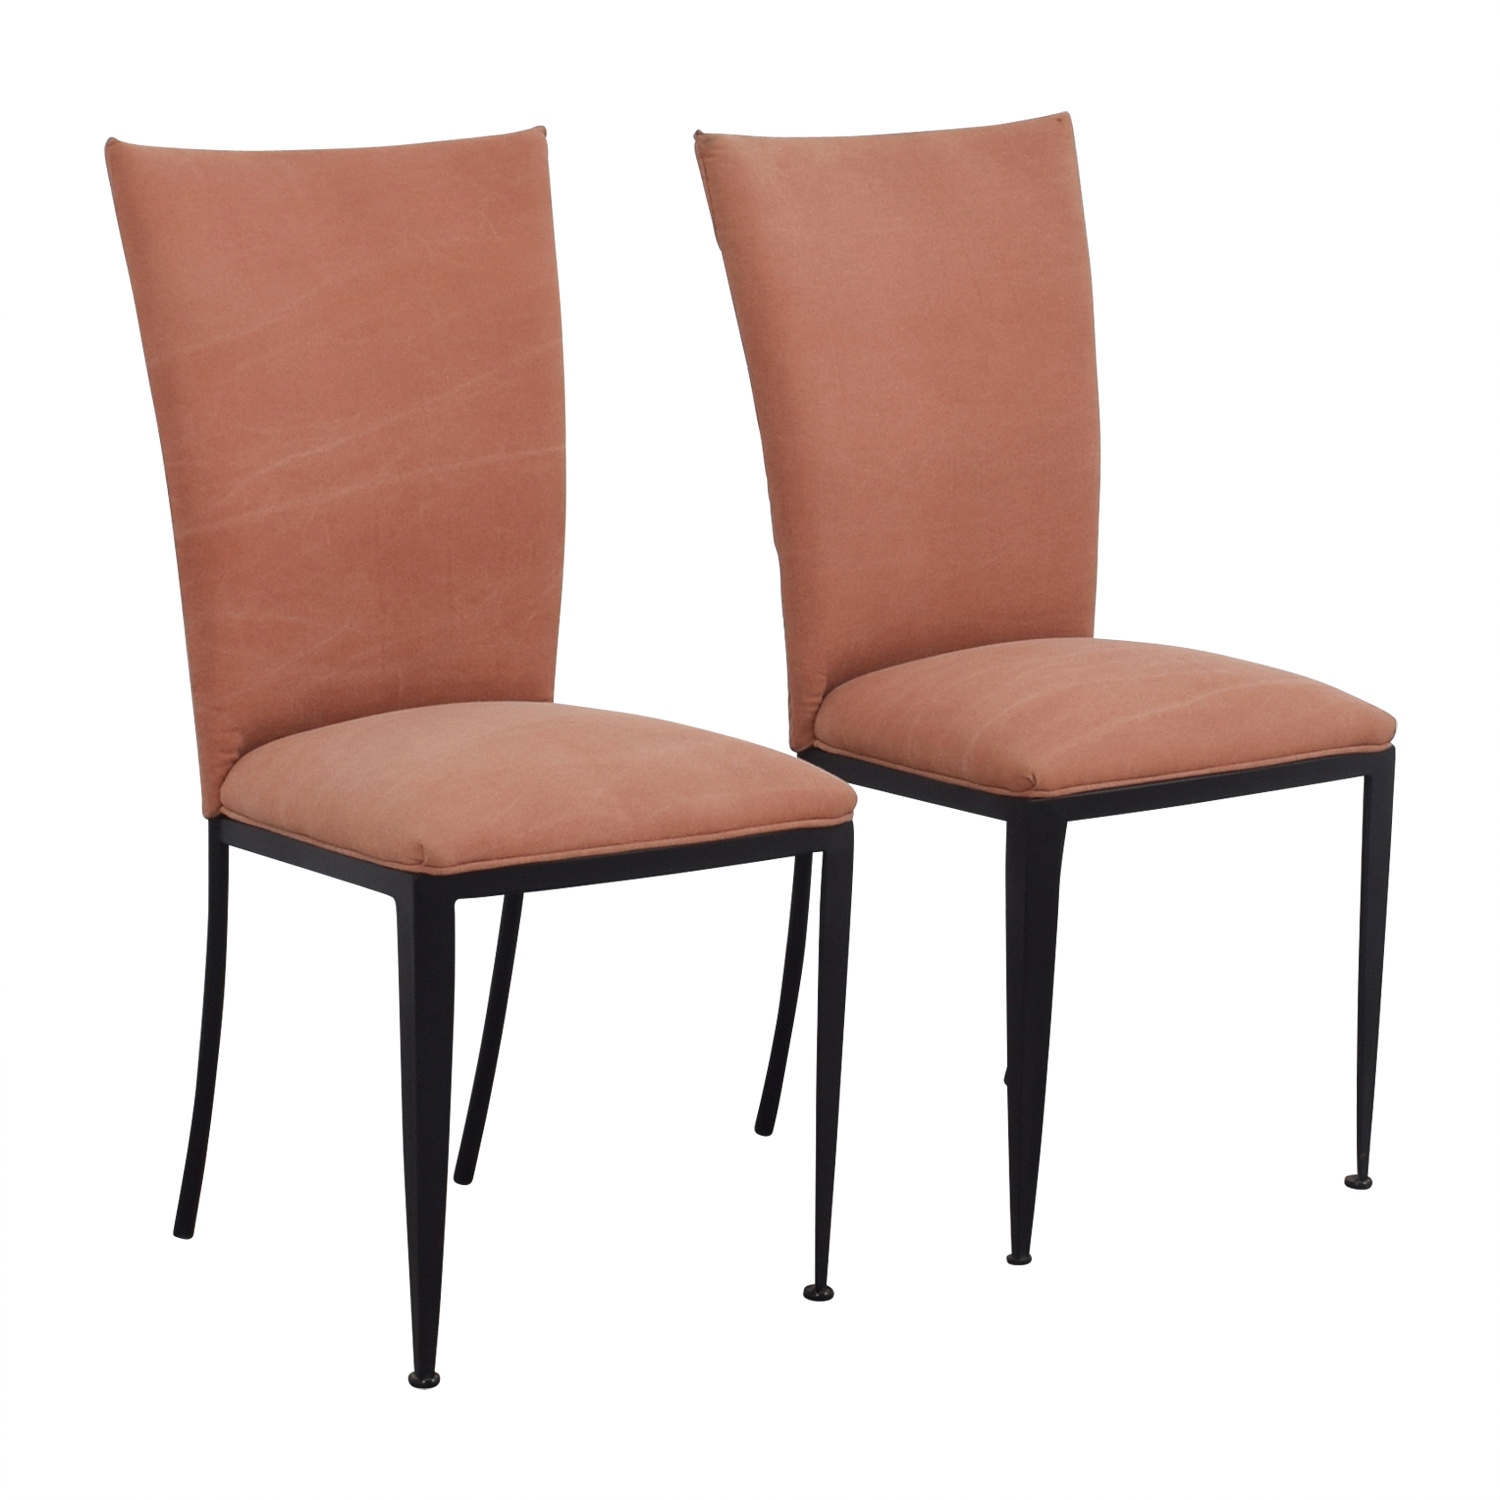 Used Dining Room Chairs: Marshall Fields Marshall Fields Pink Upholstered